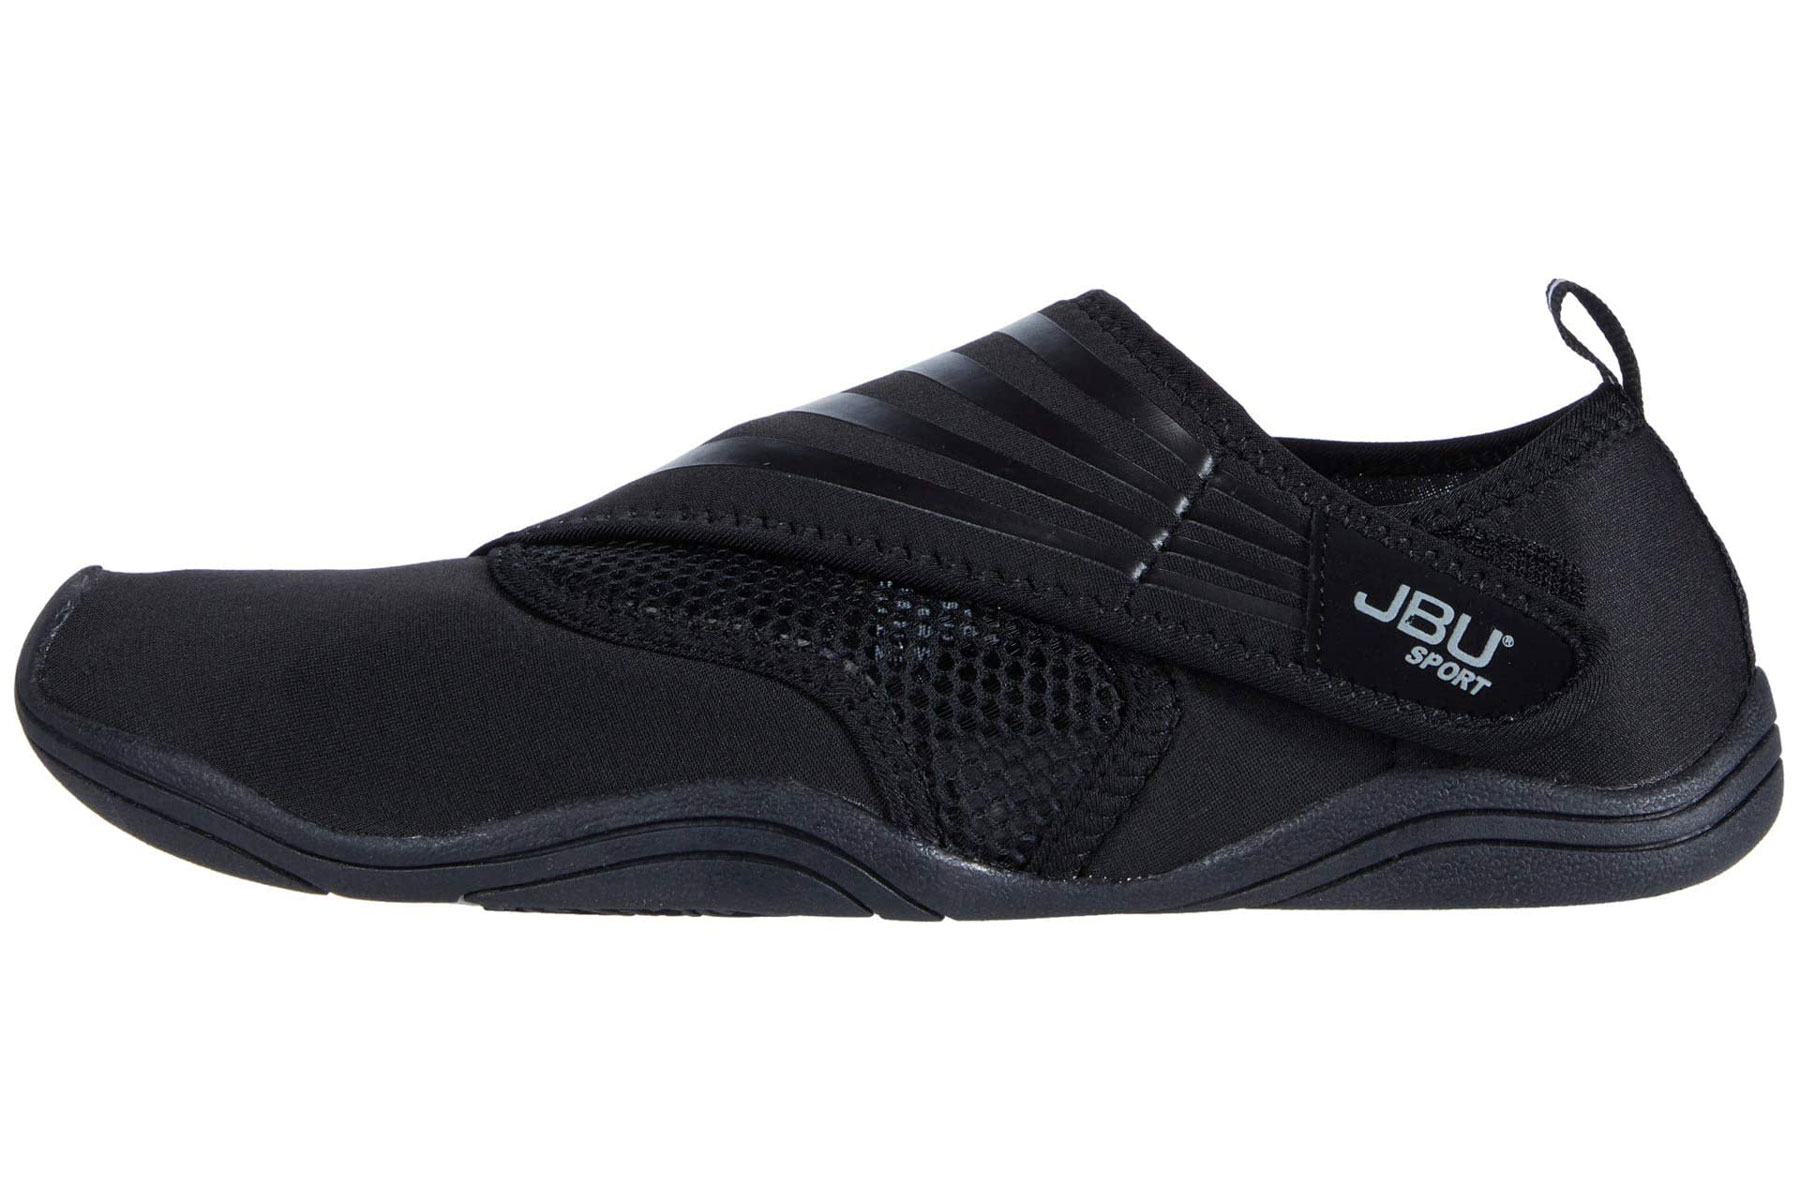 Black slip-on water shoes